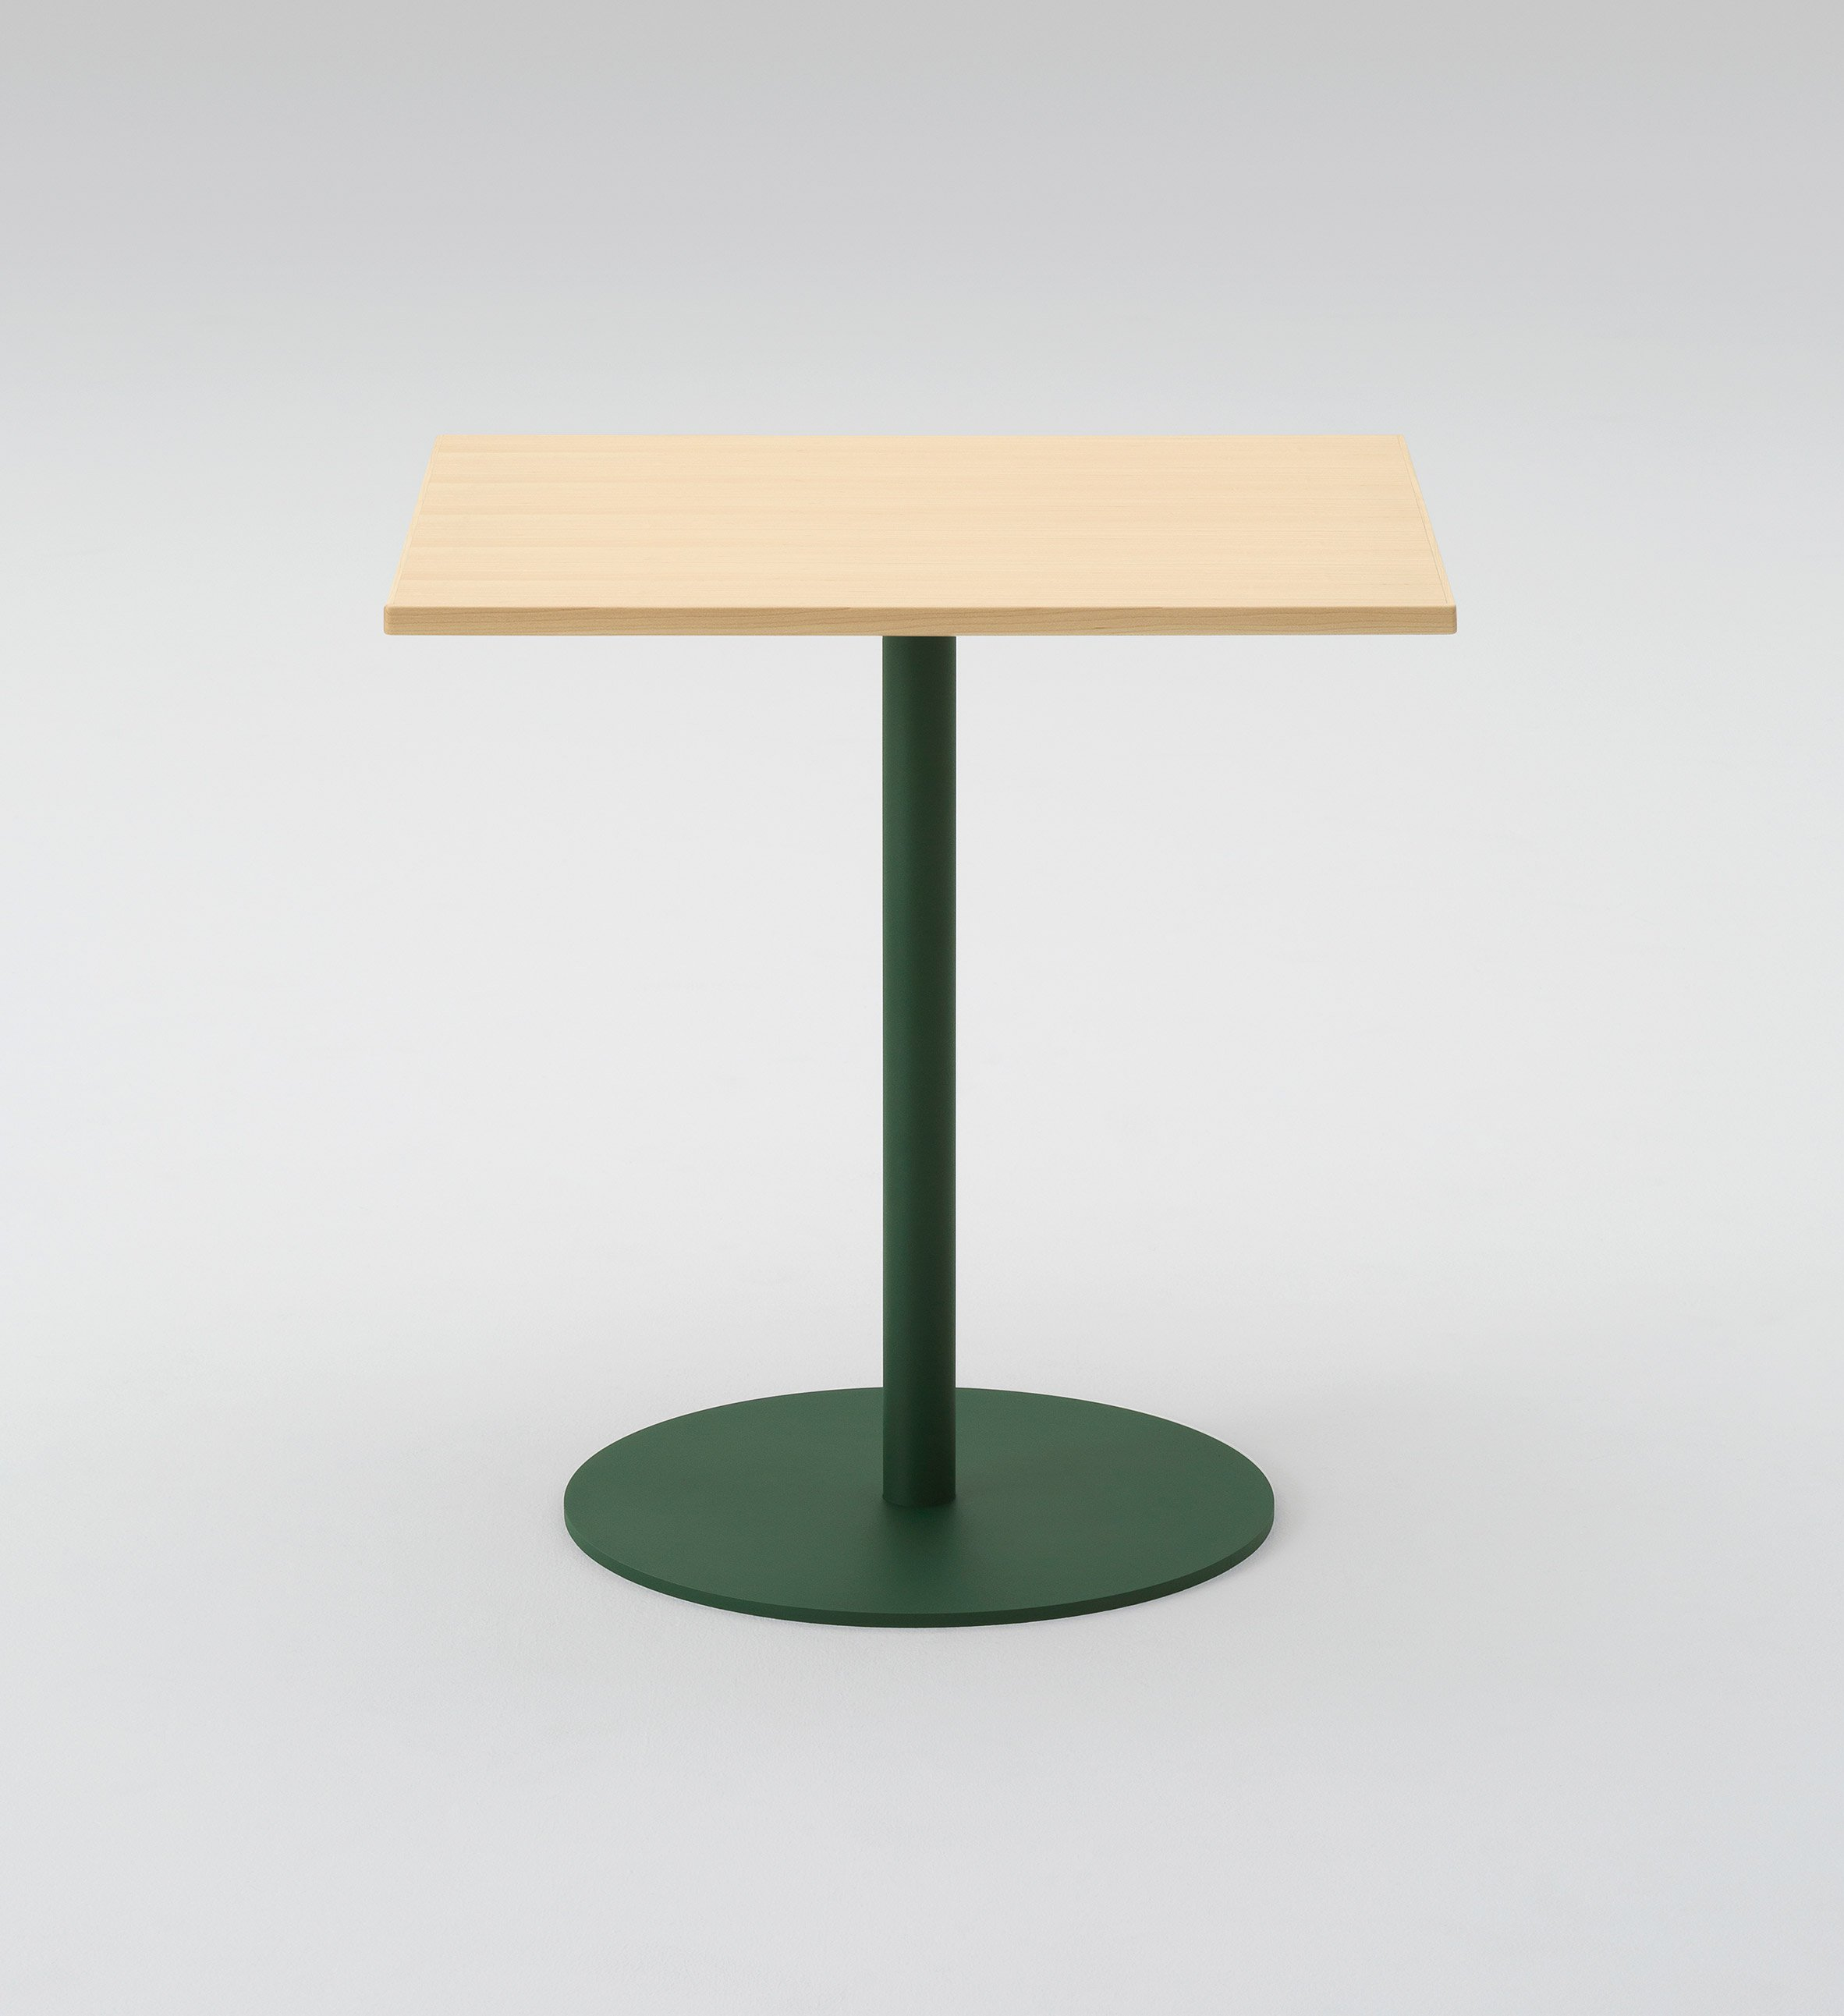 t-o-tables-jasper-morrison-maruni-design-furniture-_dezeen_2364_col_4.jpg